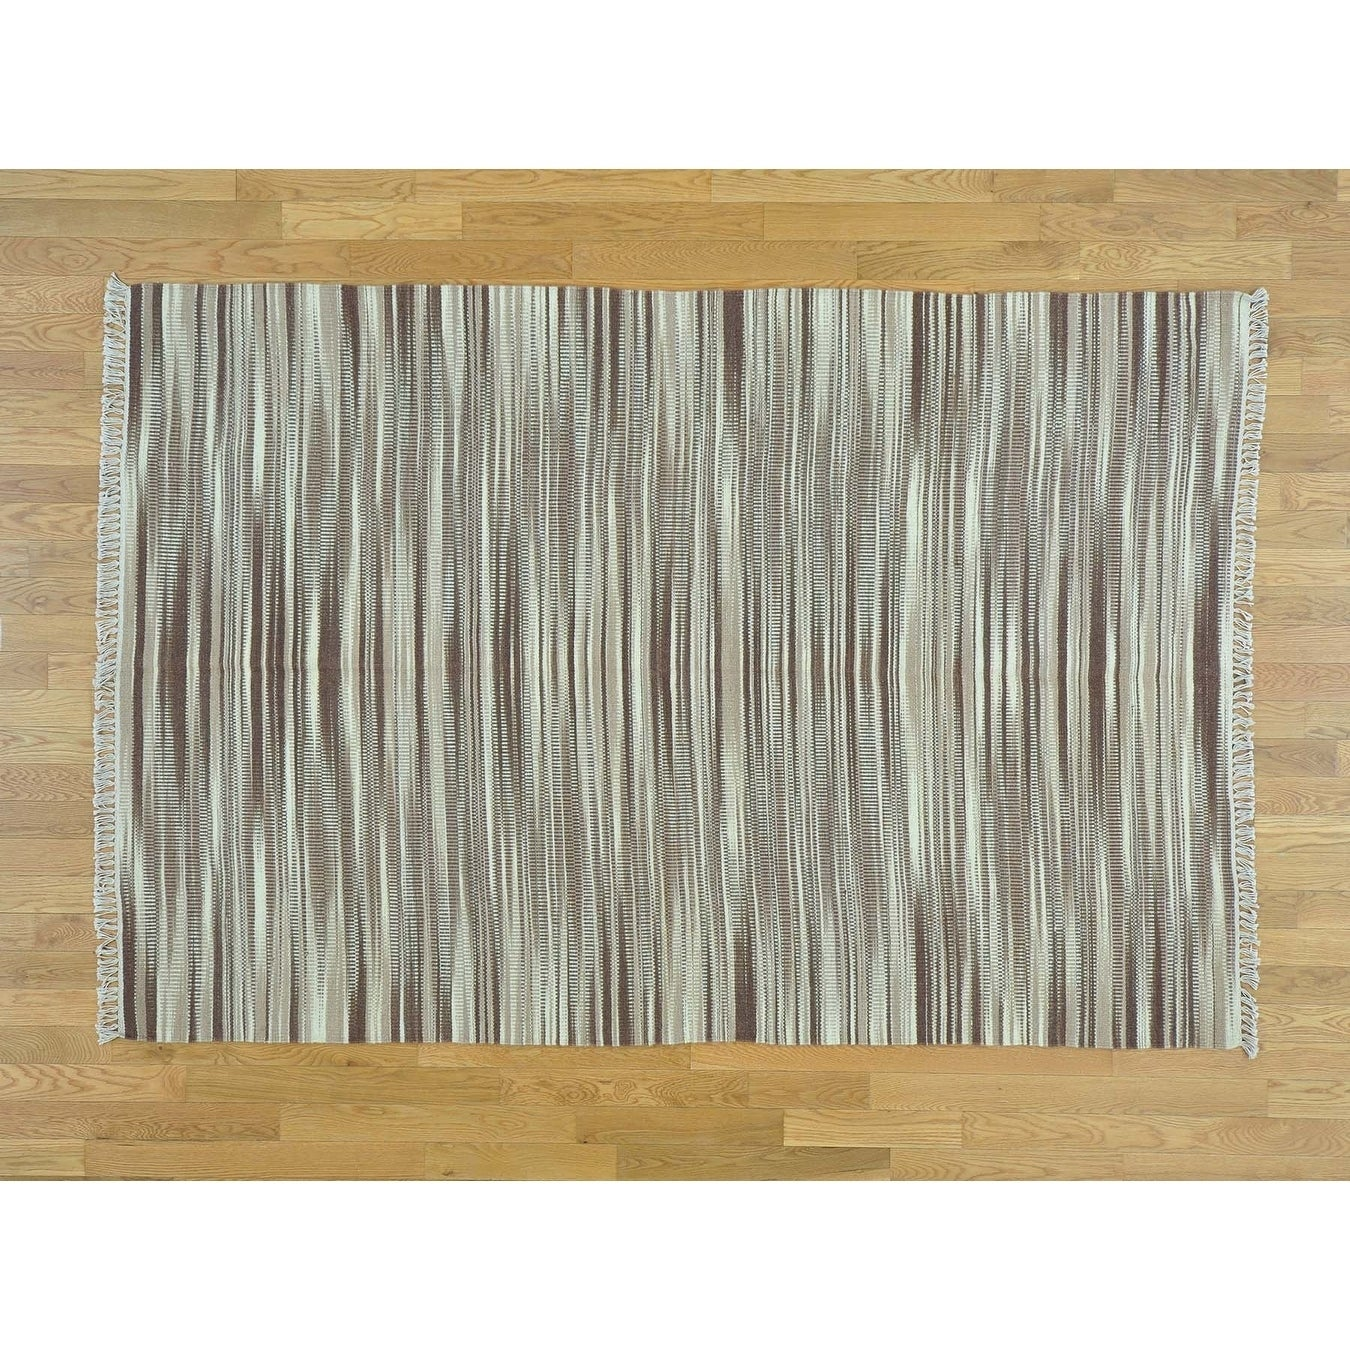 Hand Knotted Multicolored Flat Weave with Wool Oriental Rug - 55 x 82